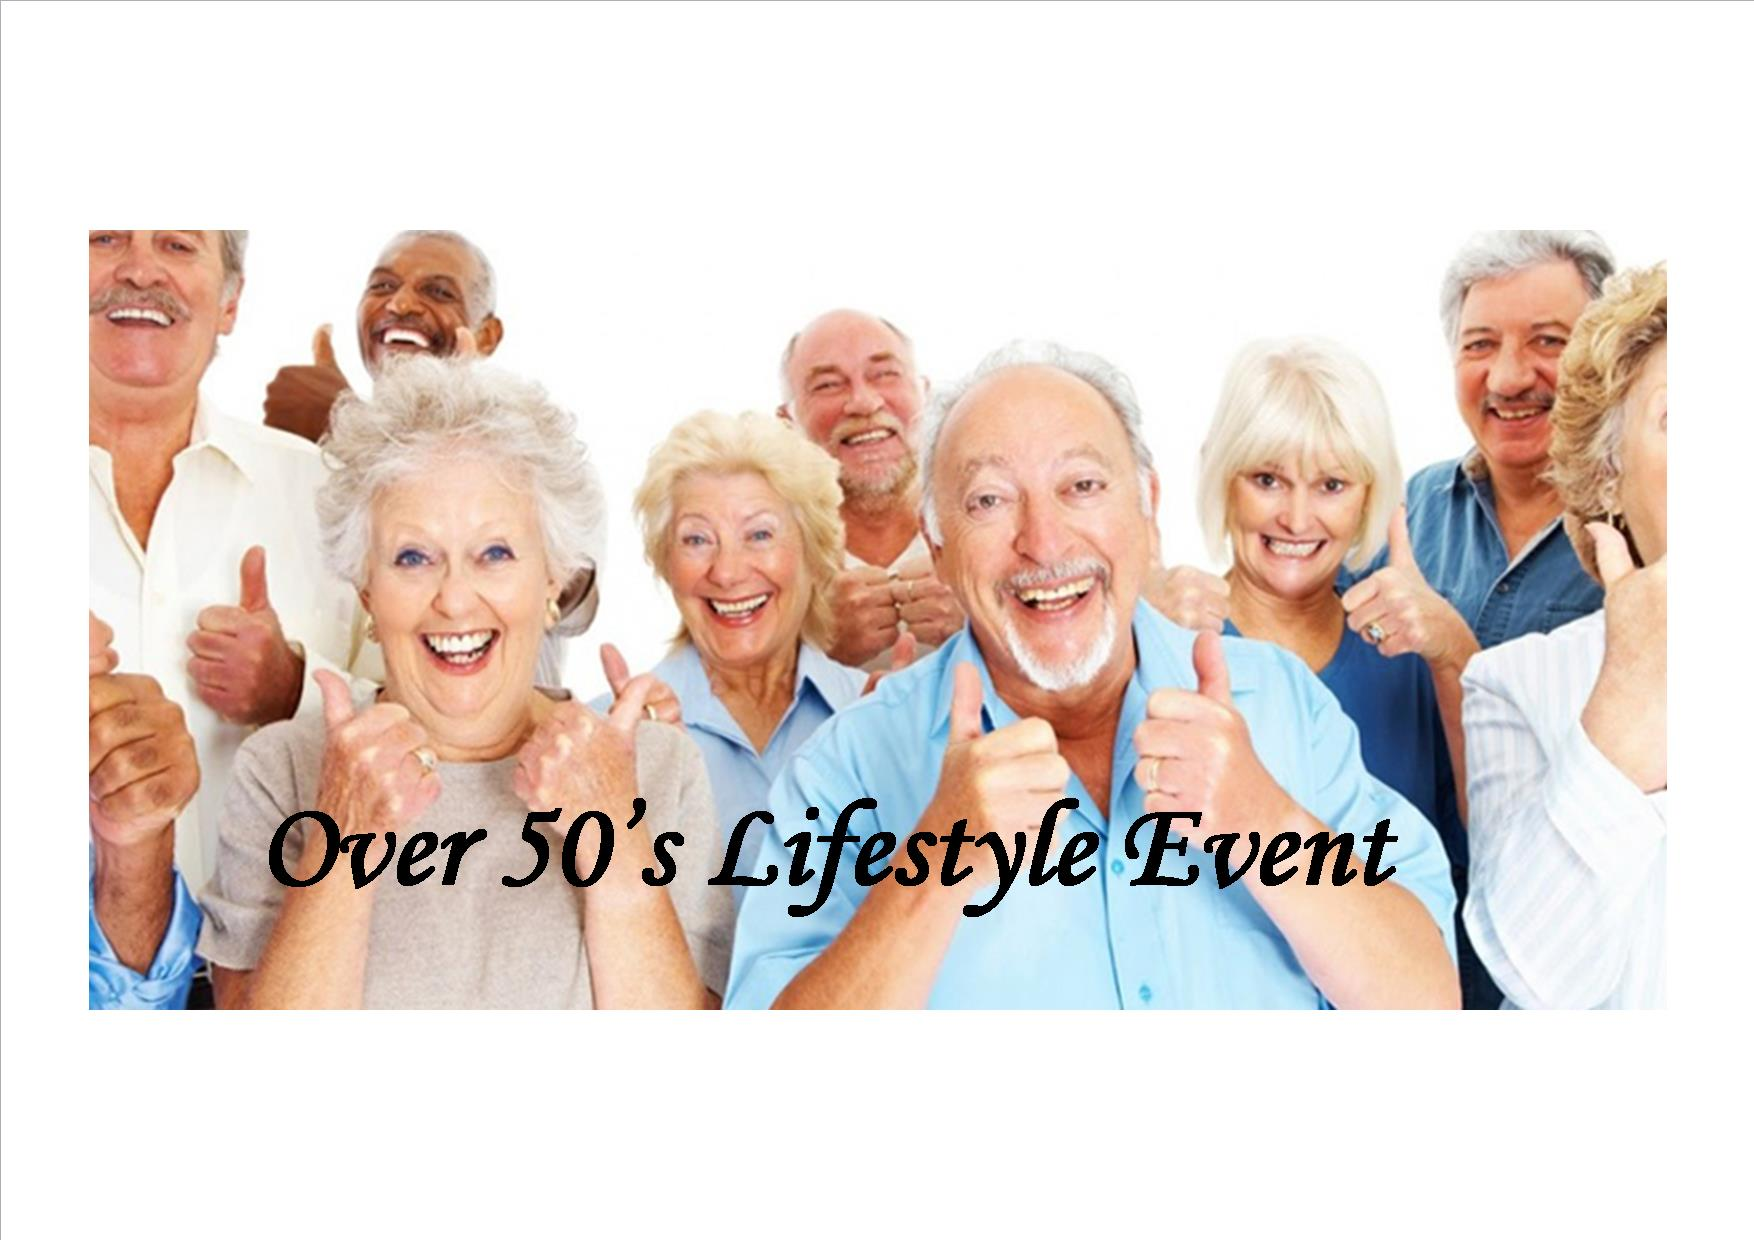 Barnet Over 50's Lifestyle Event